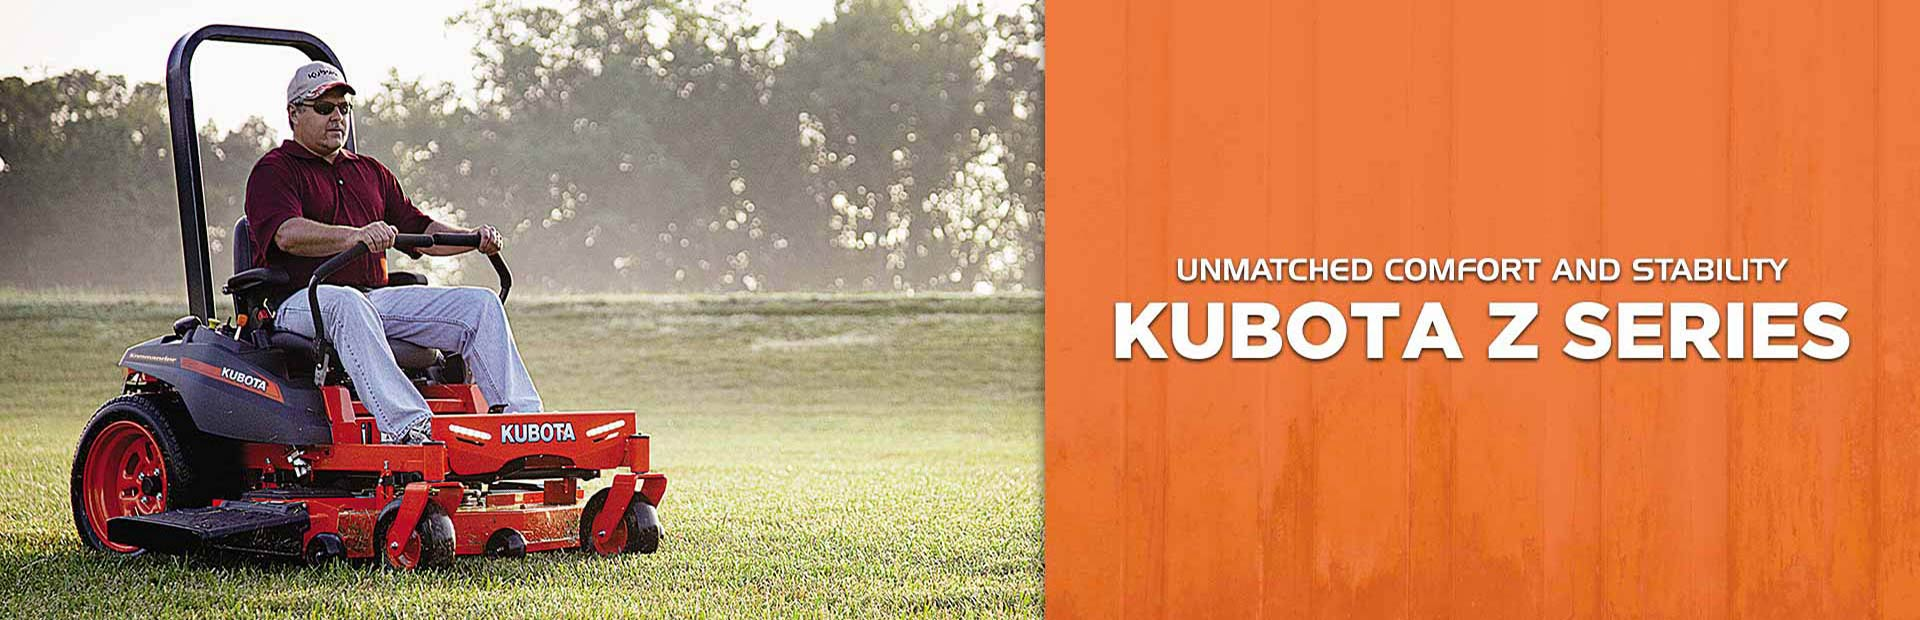 Kubota Z Series Lawn Mowers: Click here to view the models.